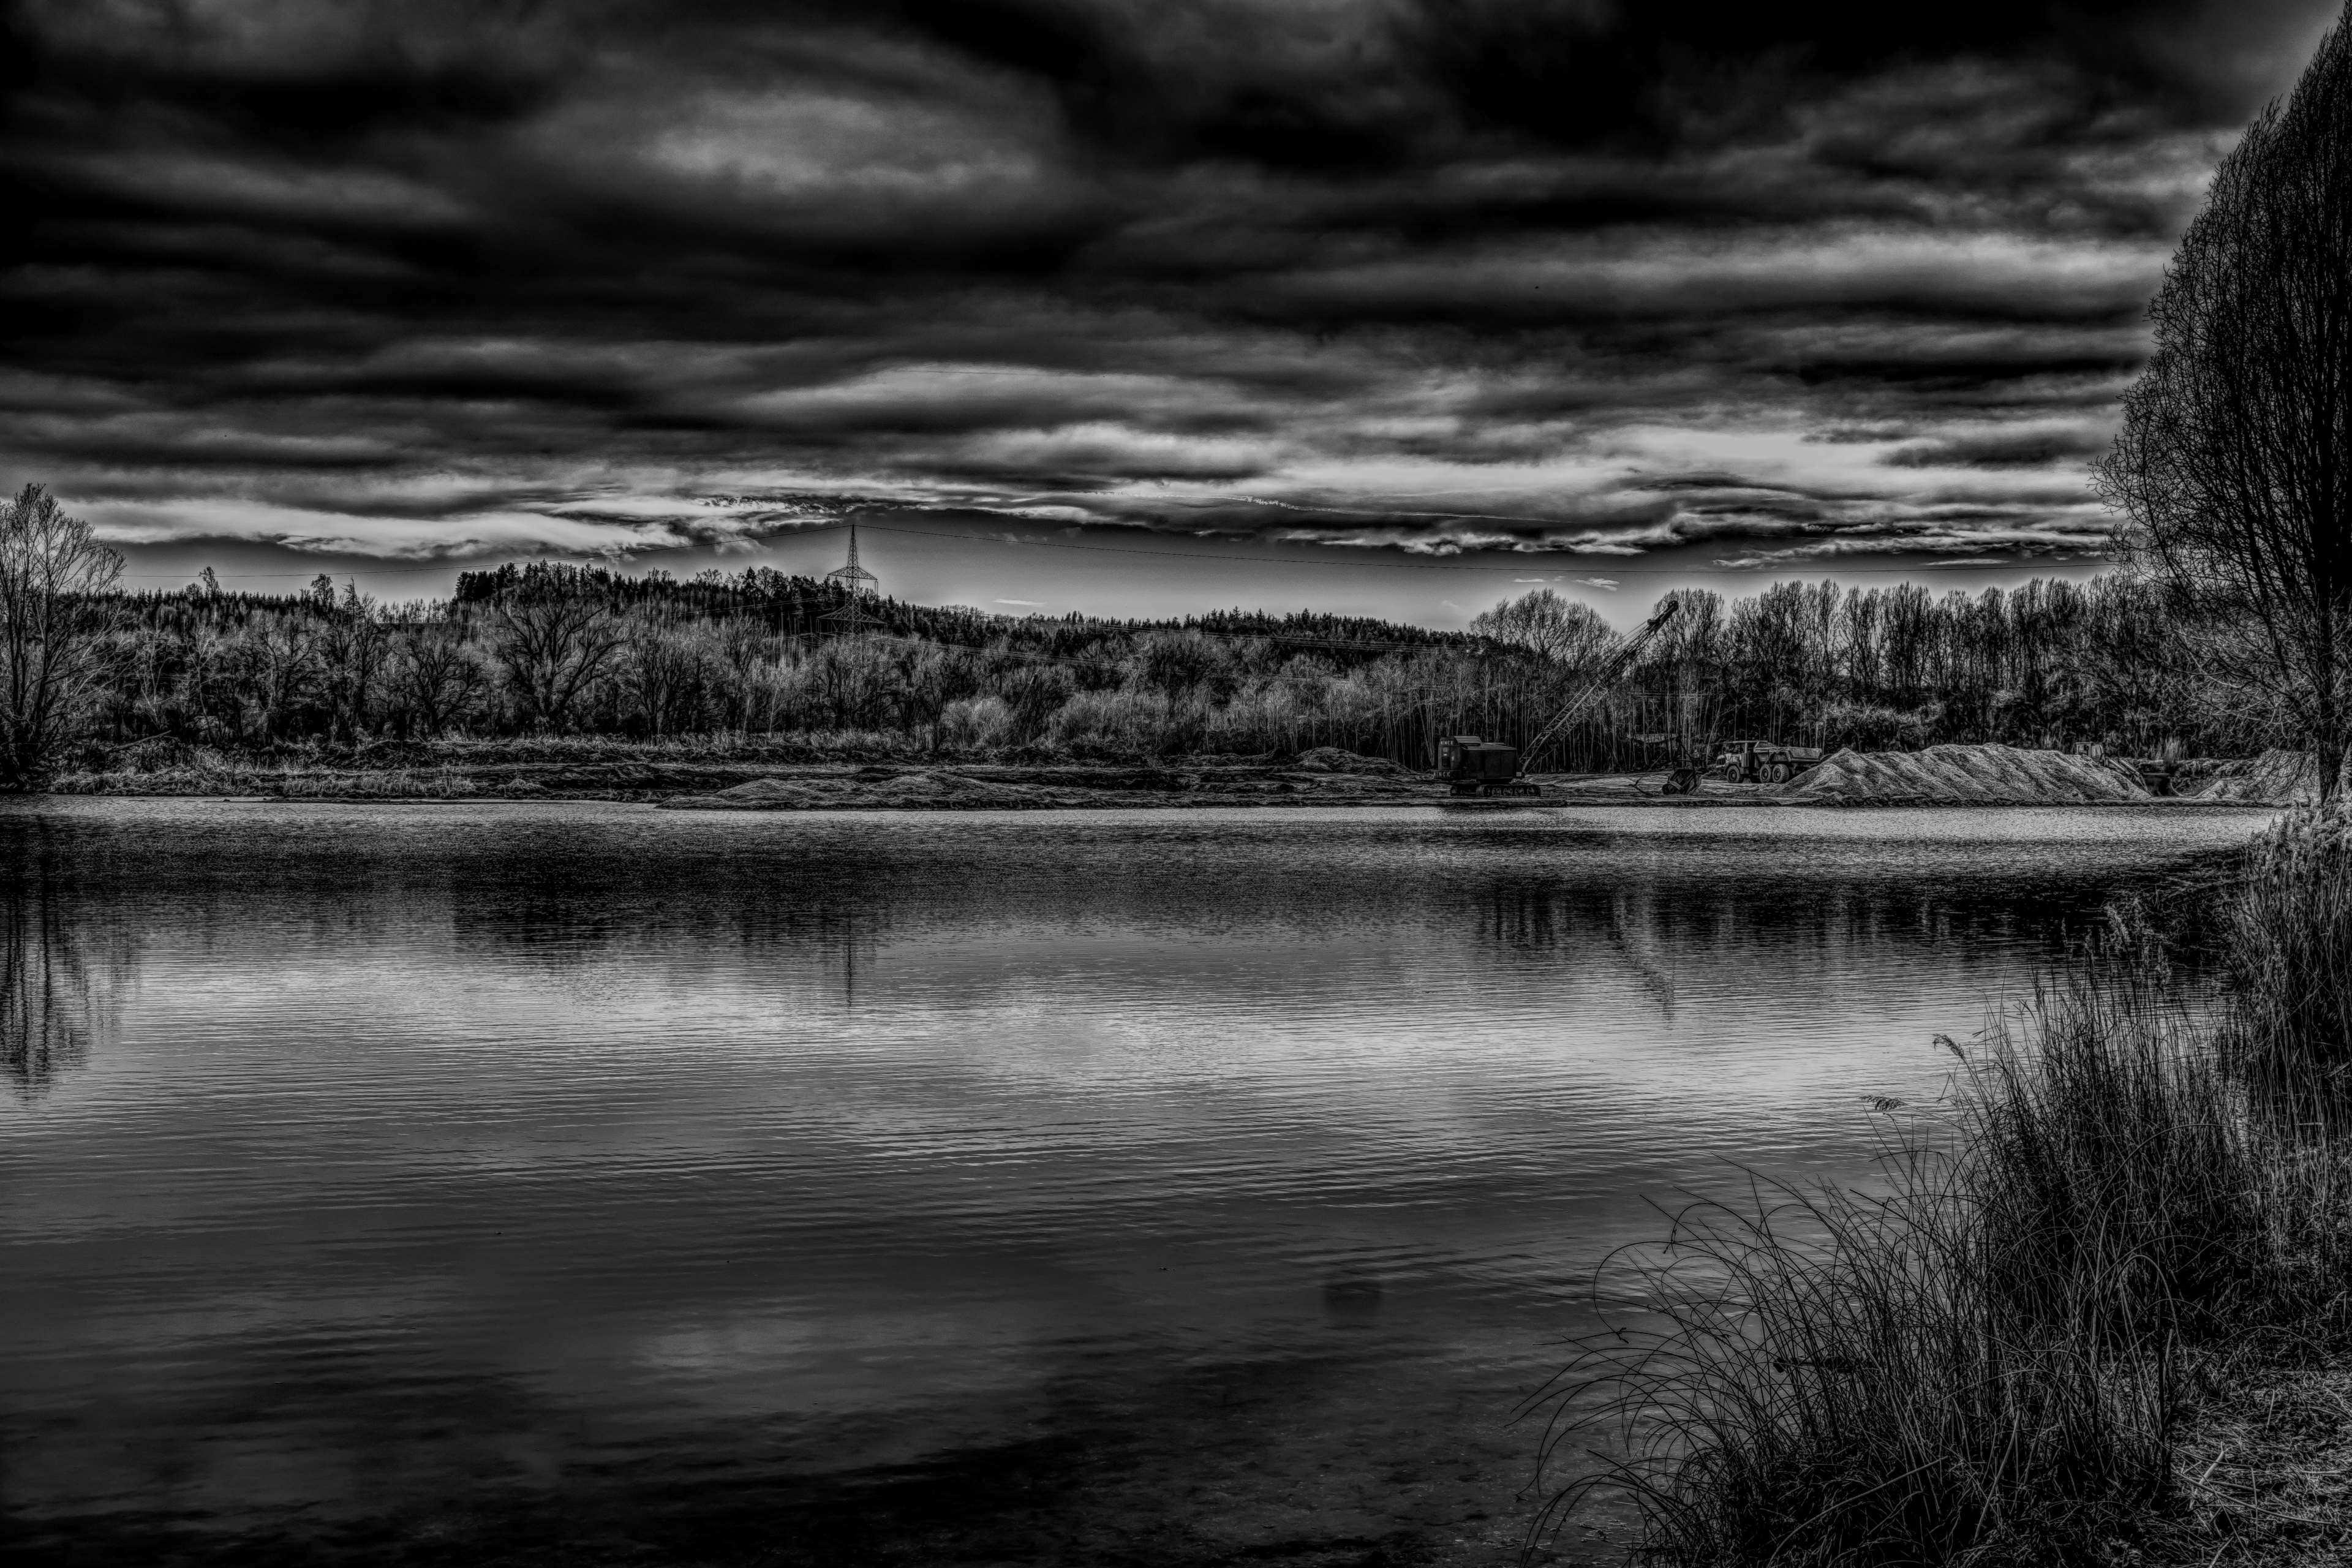 Atmosphere Atmospheric Black White Black And White Clouds Drama Dramatic Dramatic Sky Effective G Low Key Photography Landscape Photography Landscape